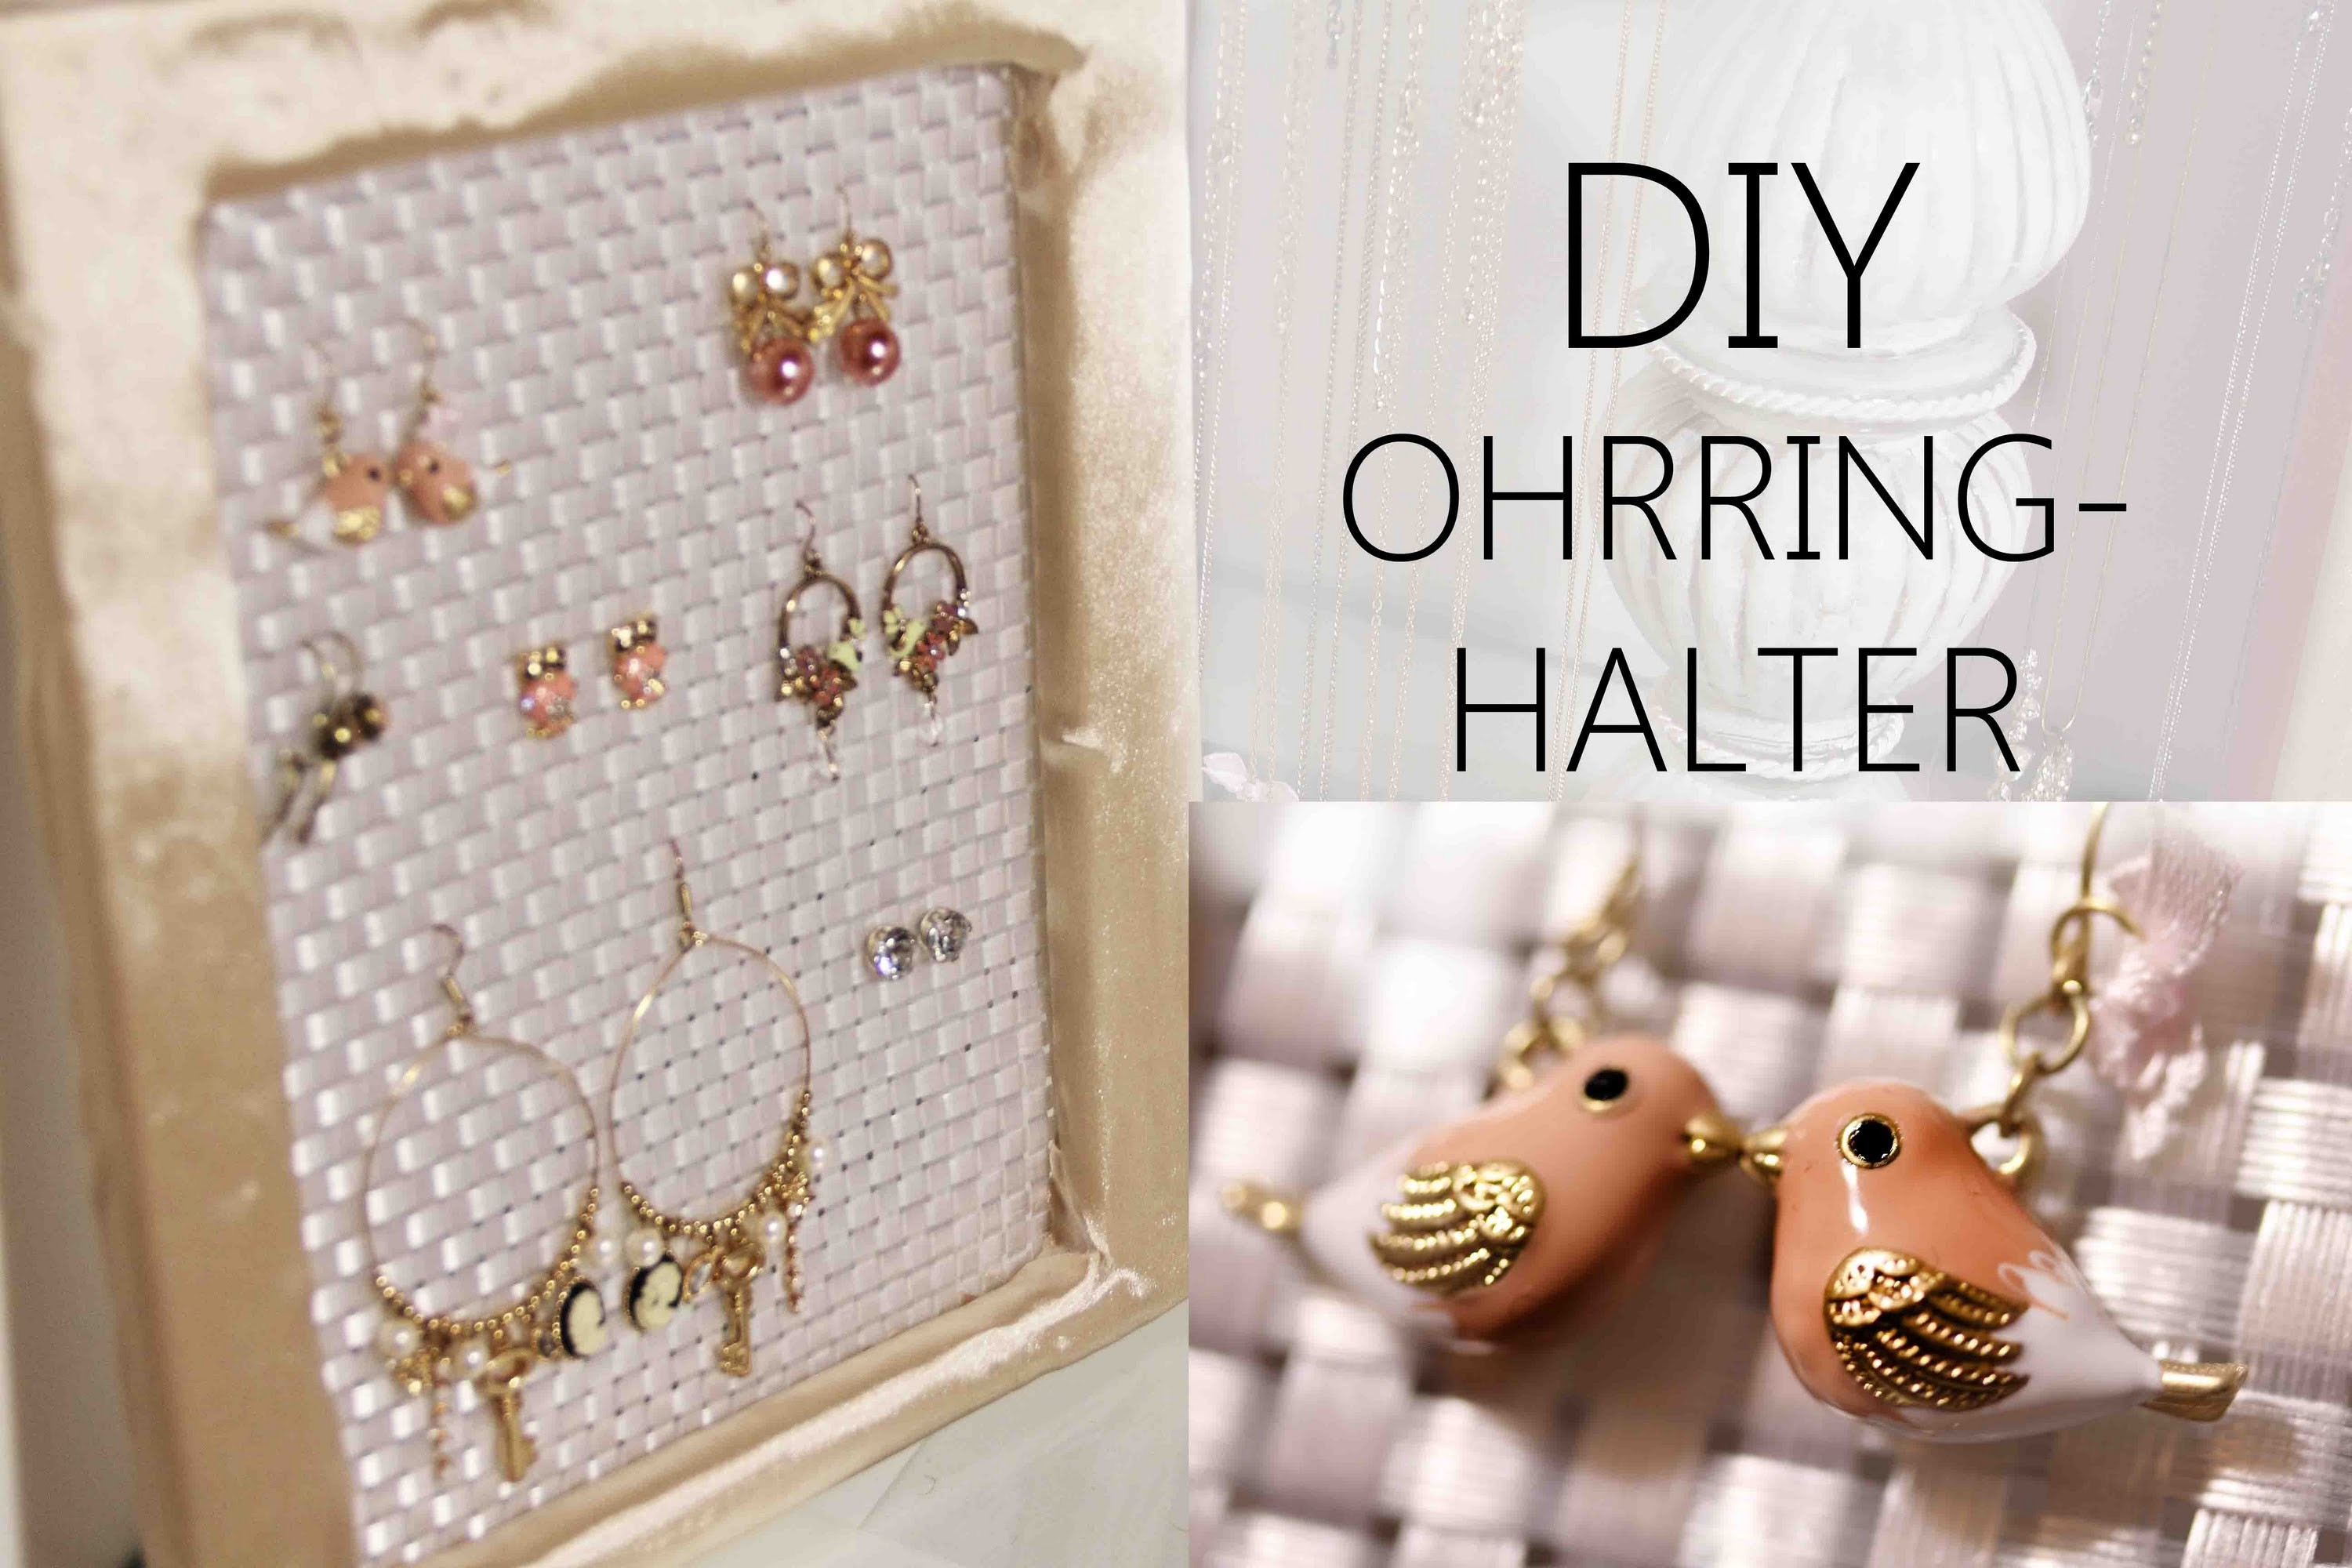 DIY | OHRRING-HALTER